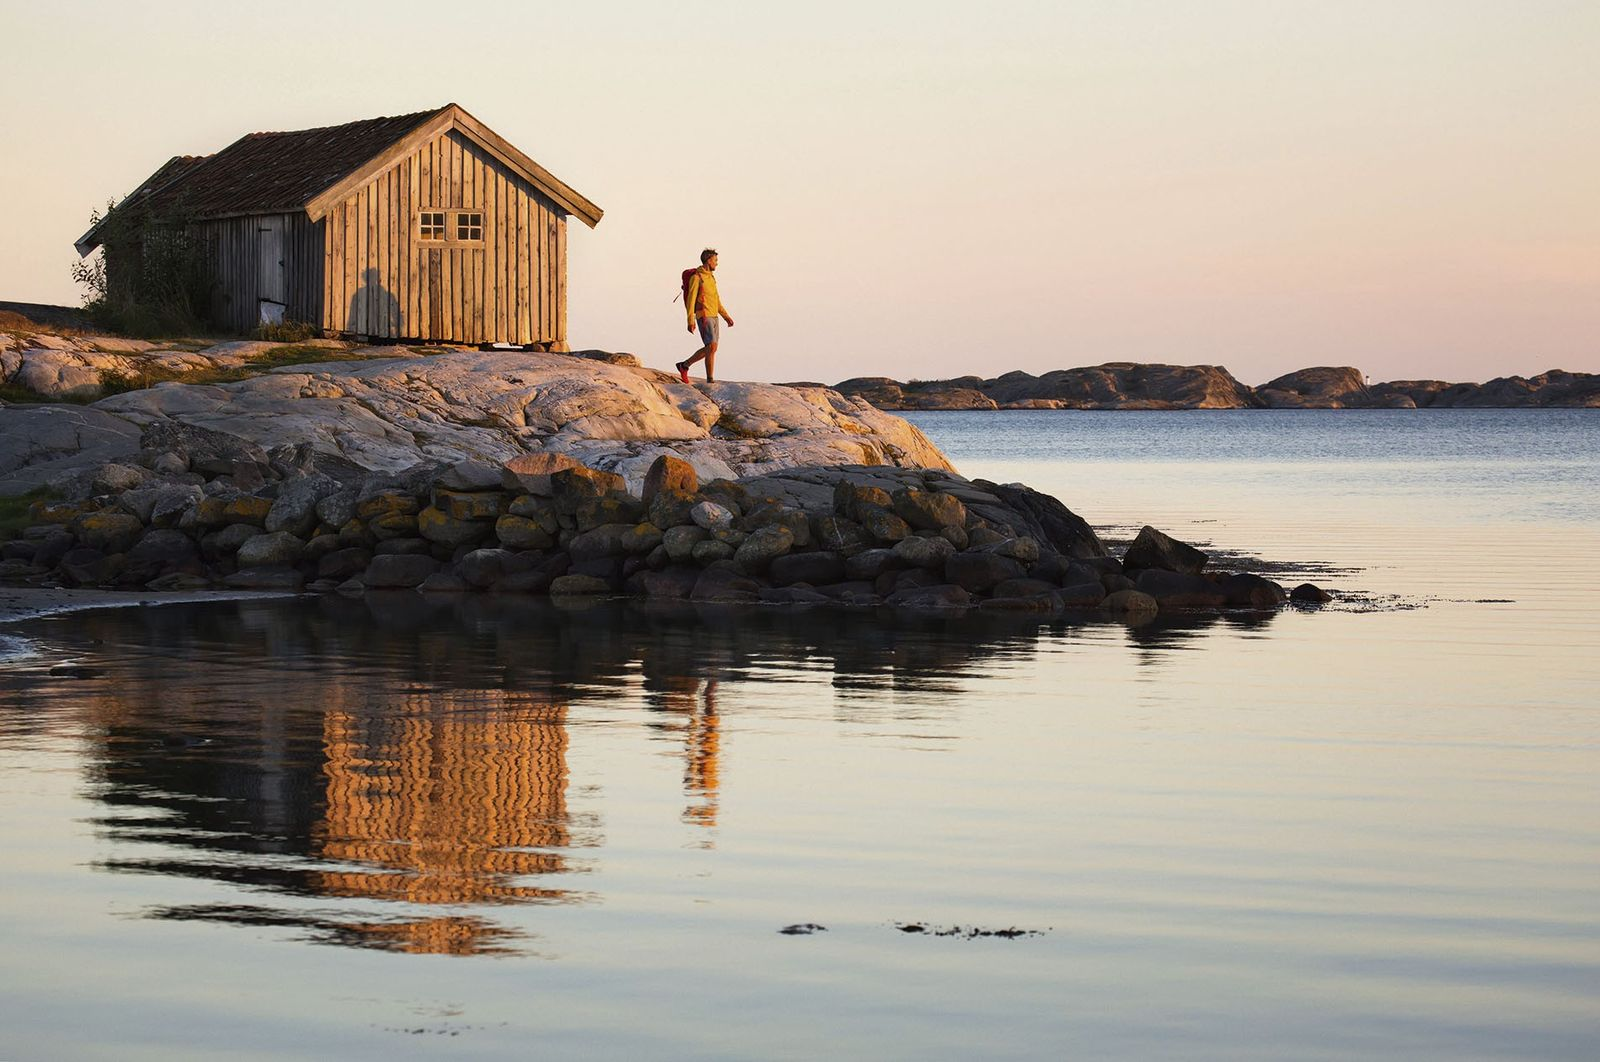 South Koster Island.